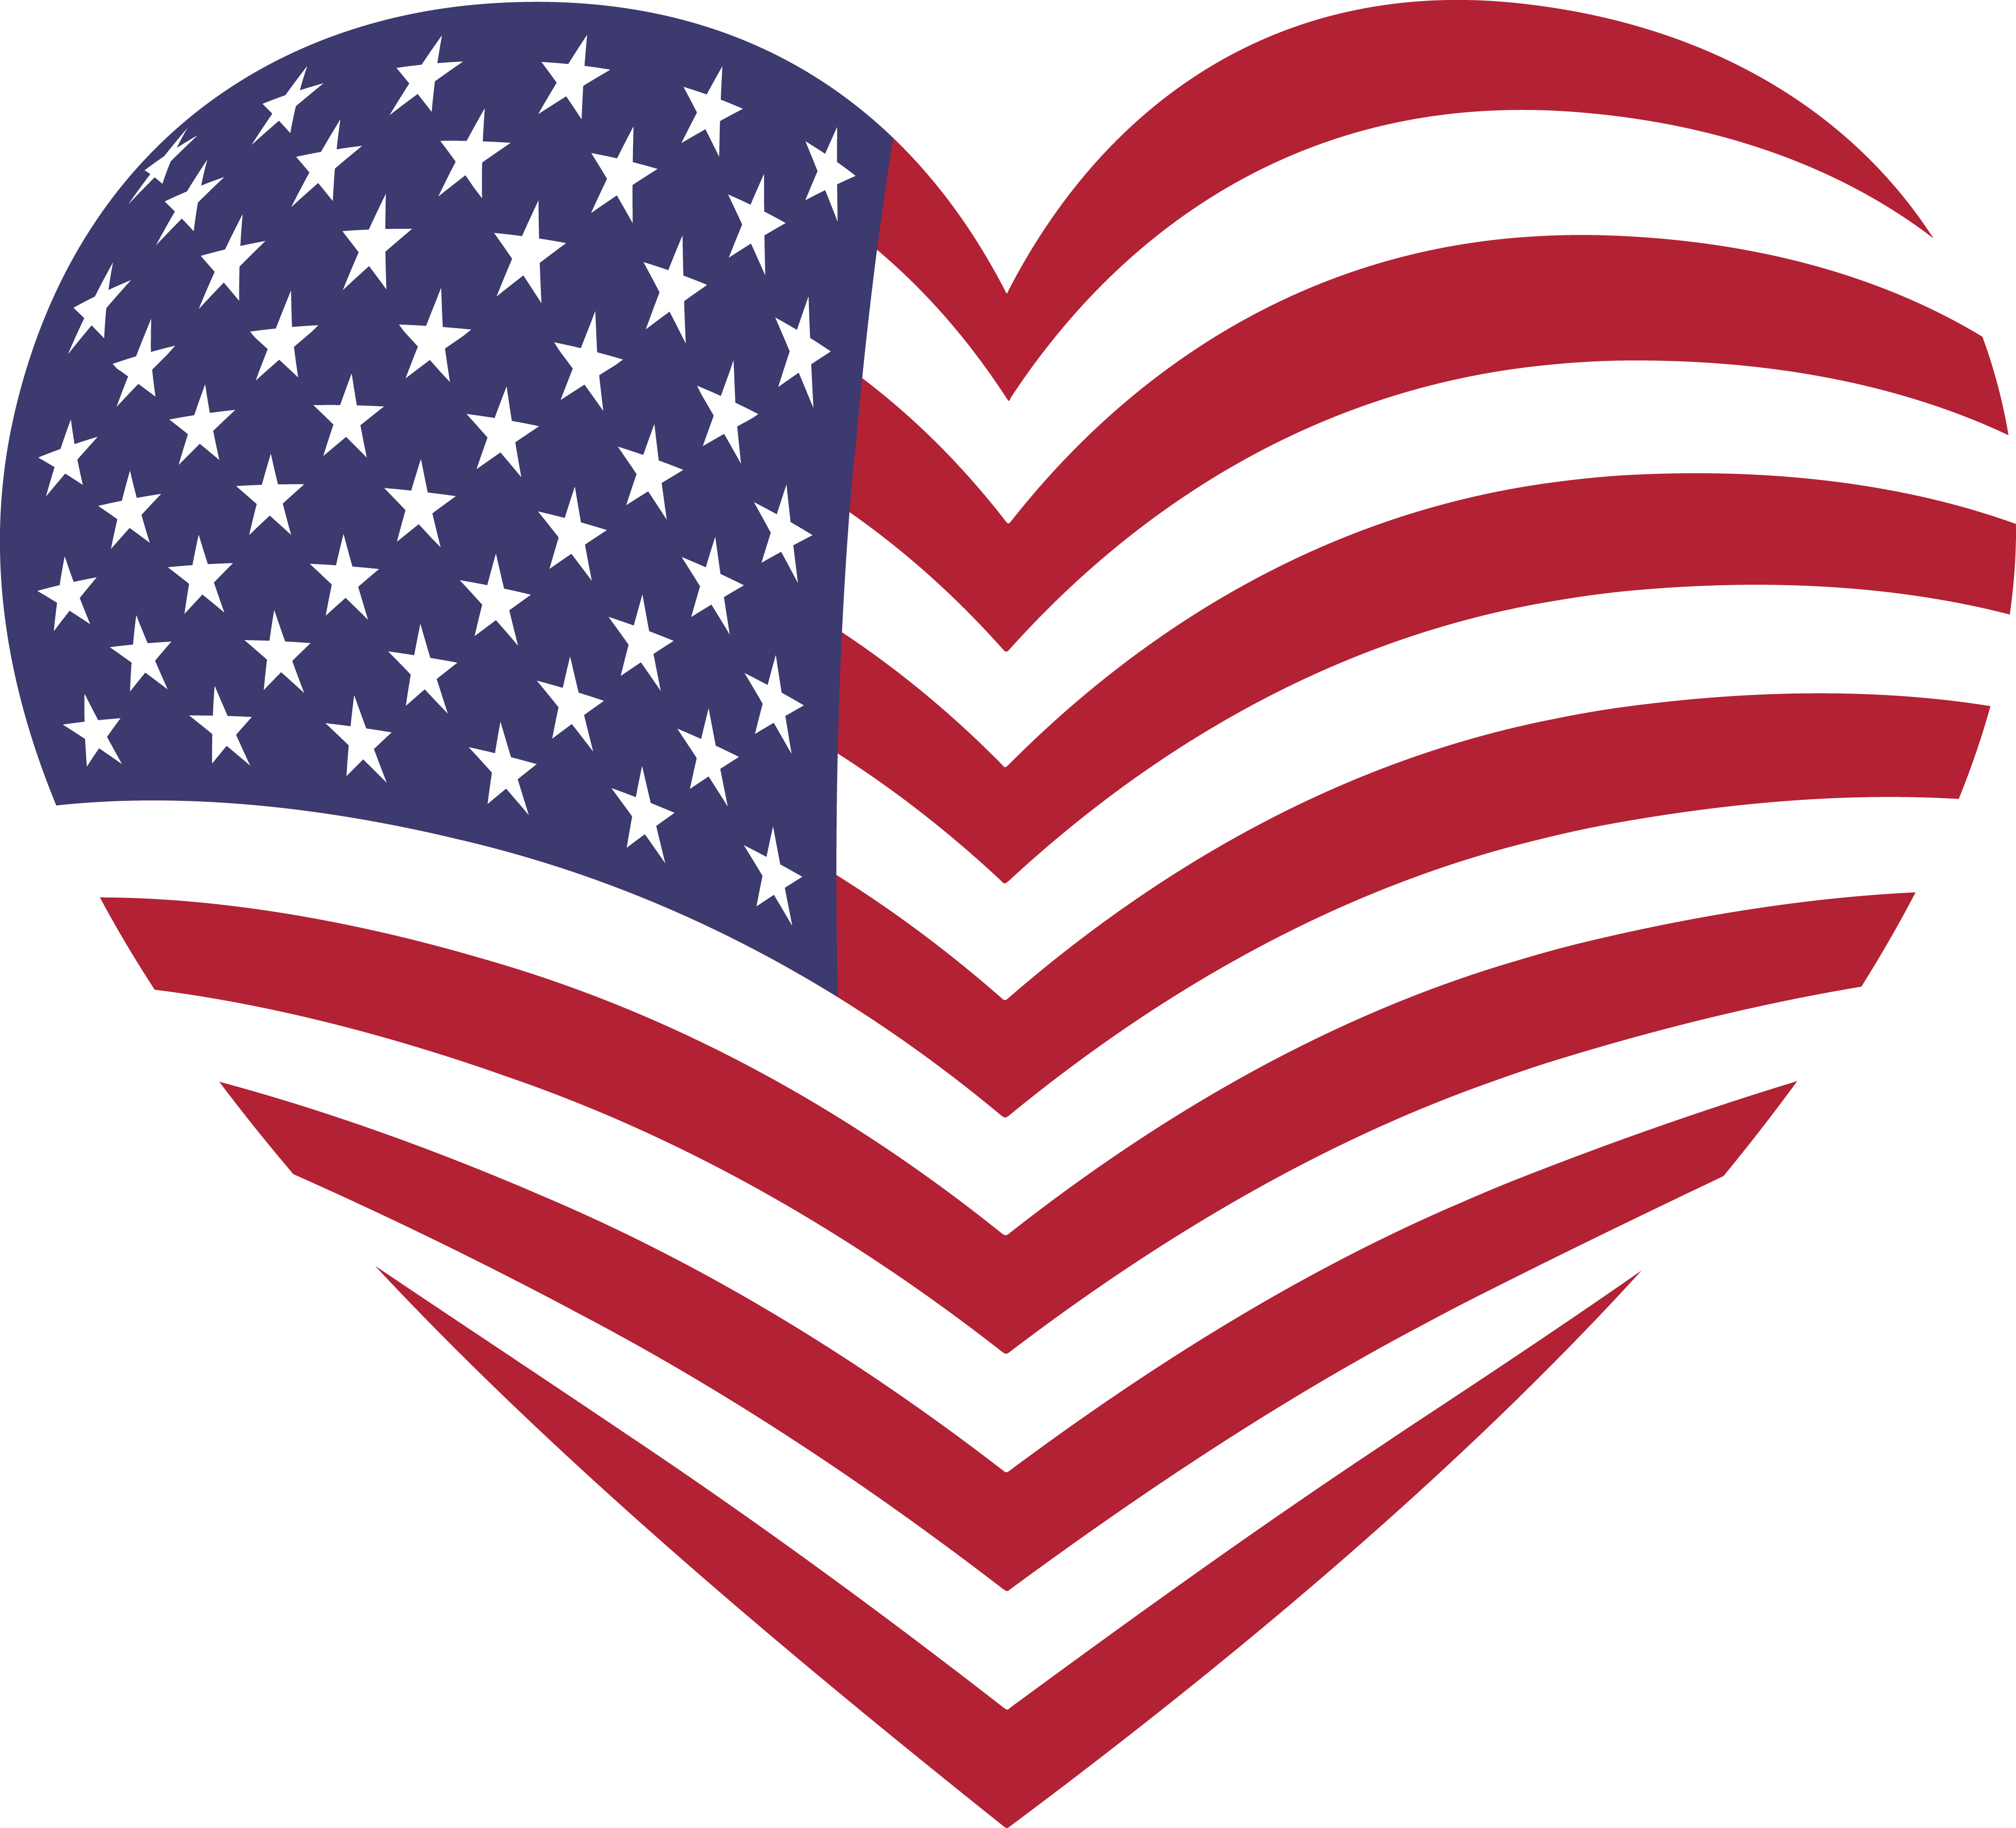 free clipart of a heart with an american flag pattern rh free clipartof com free clip art american flag border free clipart american flag no fee